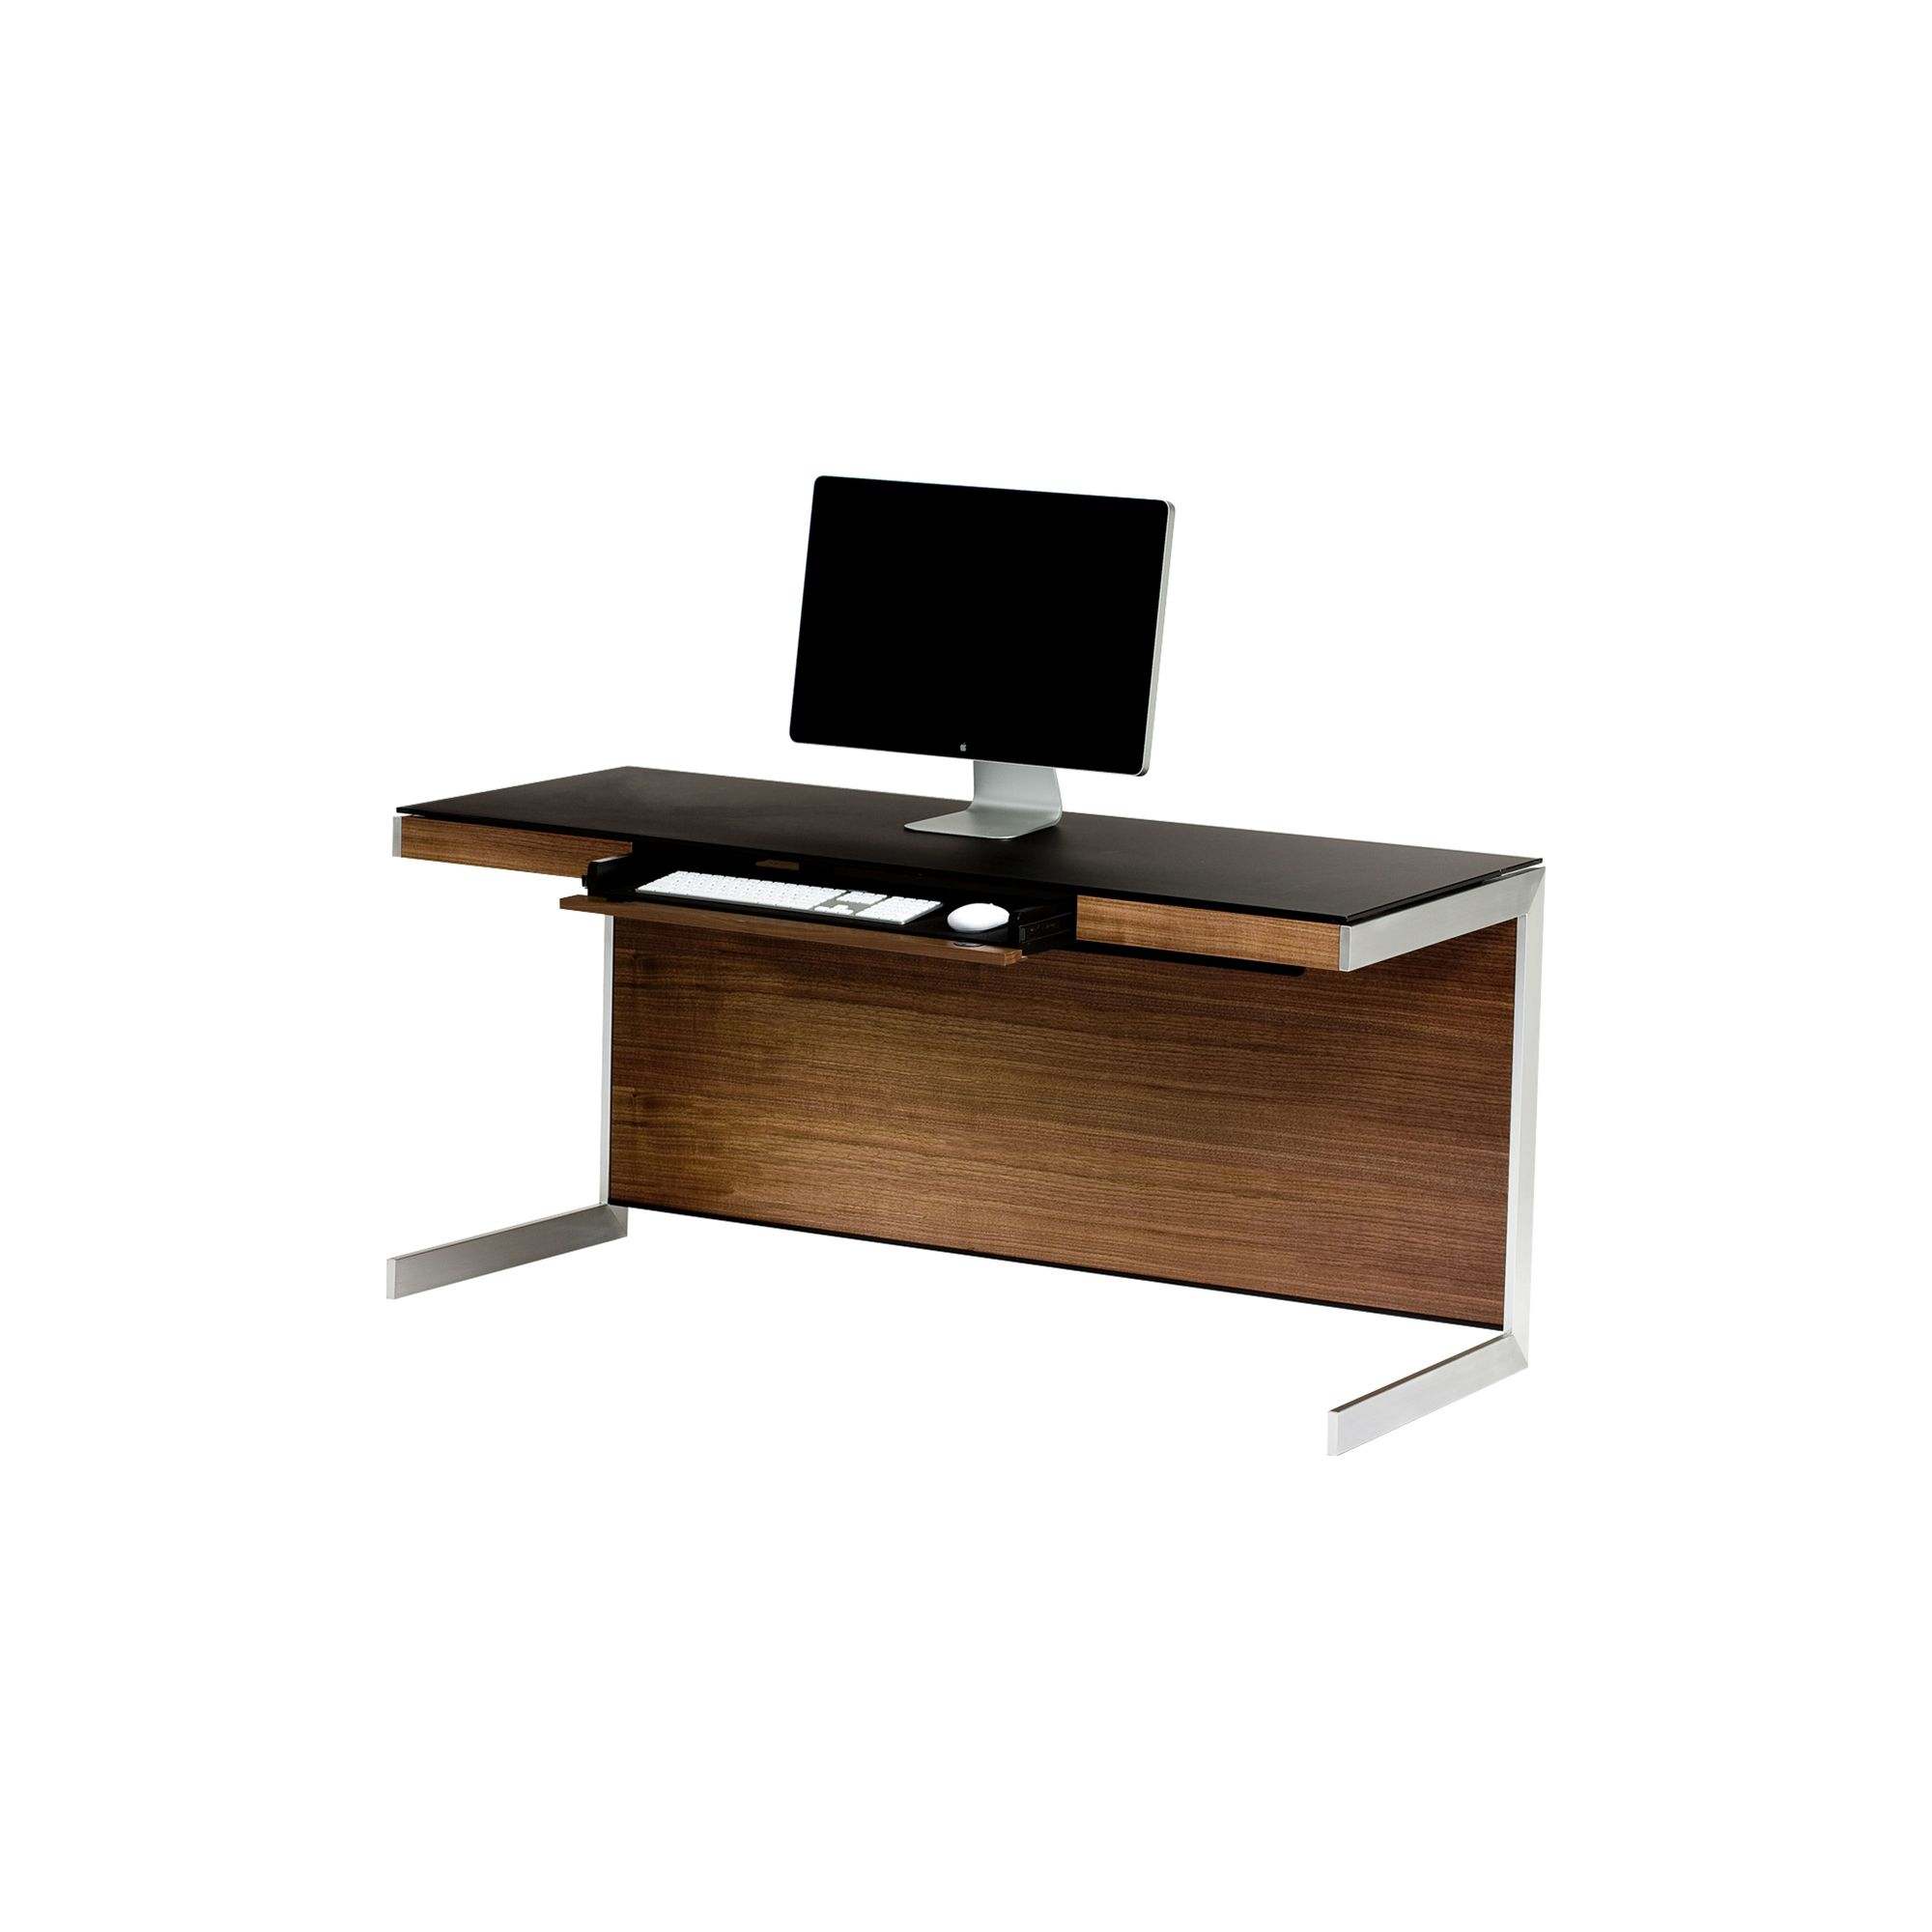 Sequel 6001 Desk in Natural Walnut with Glass Top at Tesco Direct